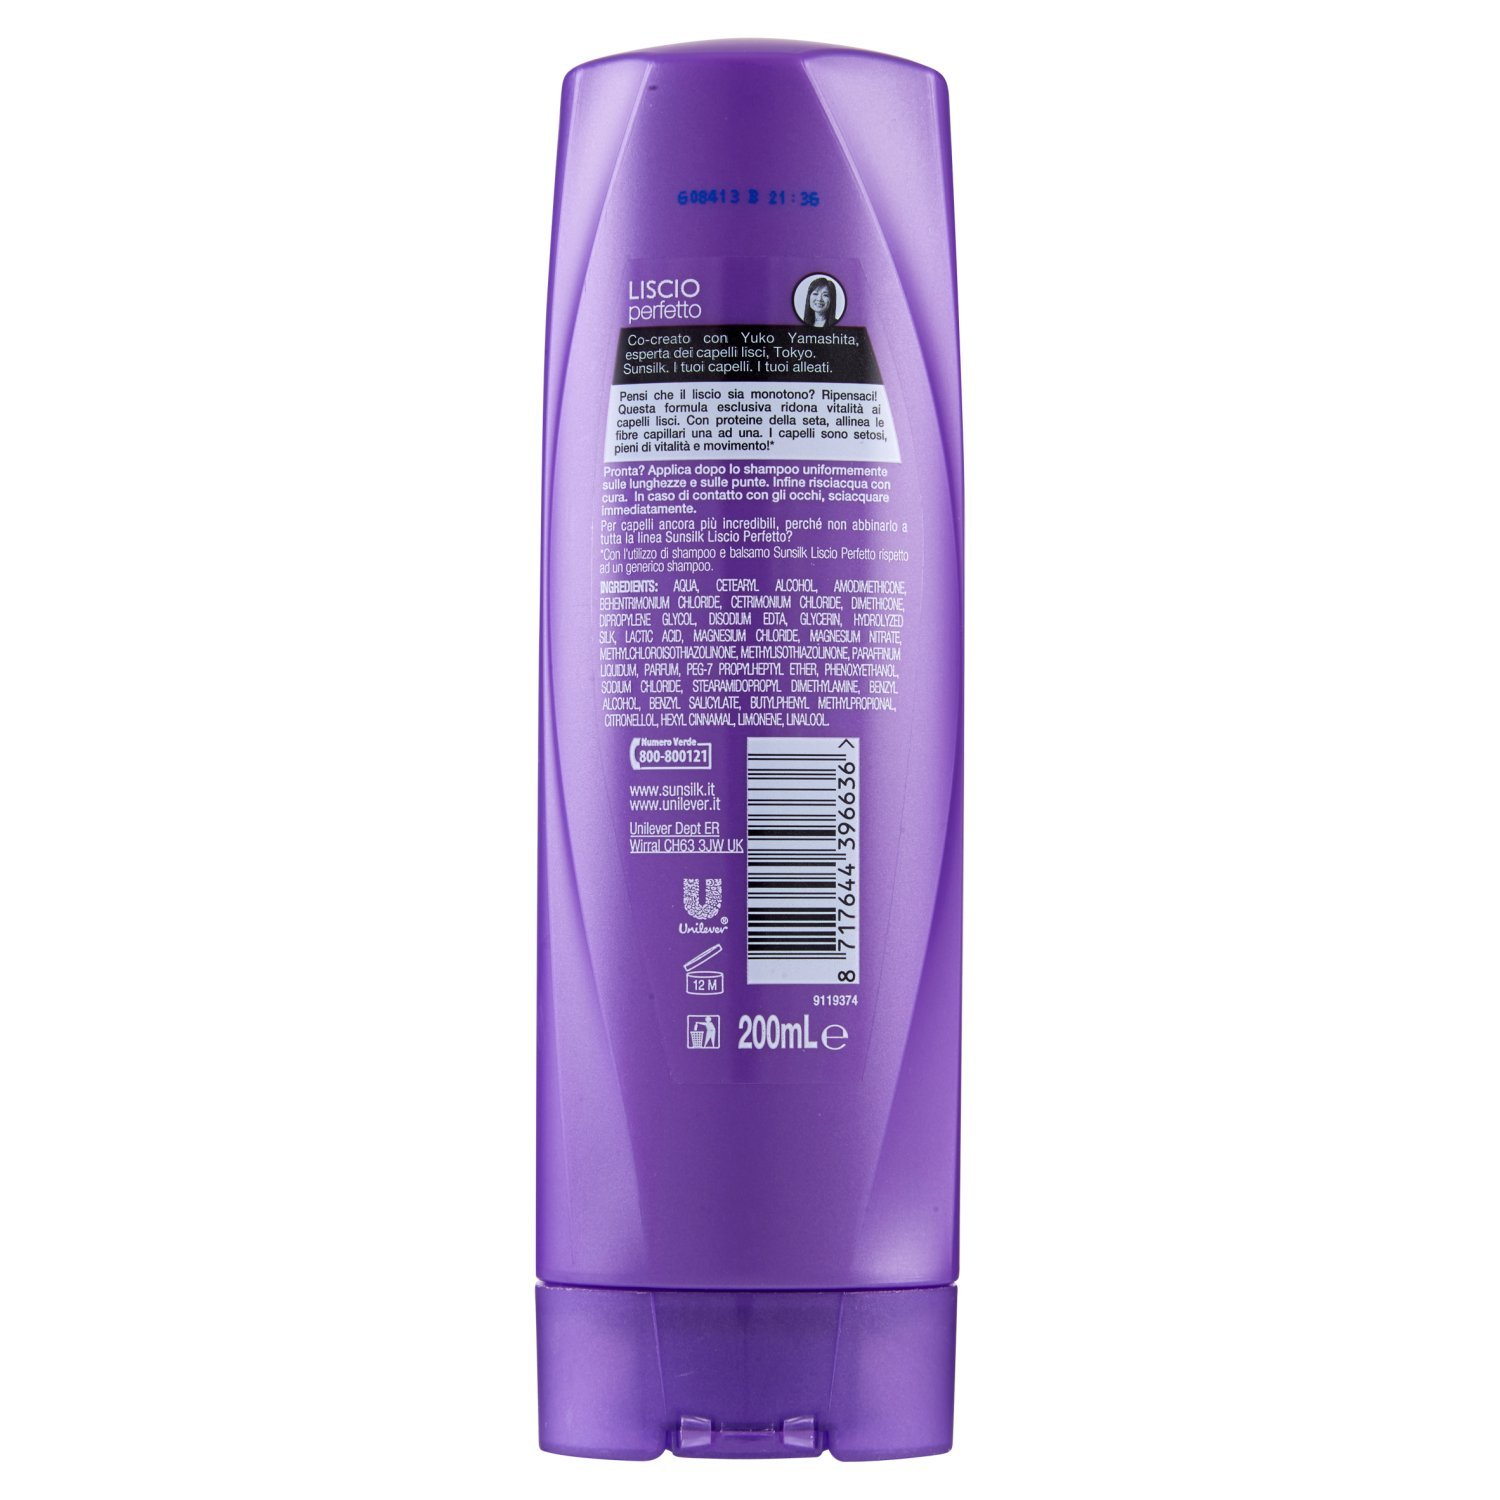 Sunsilk co-creations - Bálsamo, liso perfecto para pelo liso - 200 ml - [Paquete de 4]: Amazon.es: Belleza